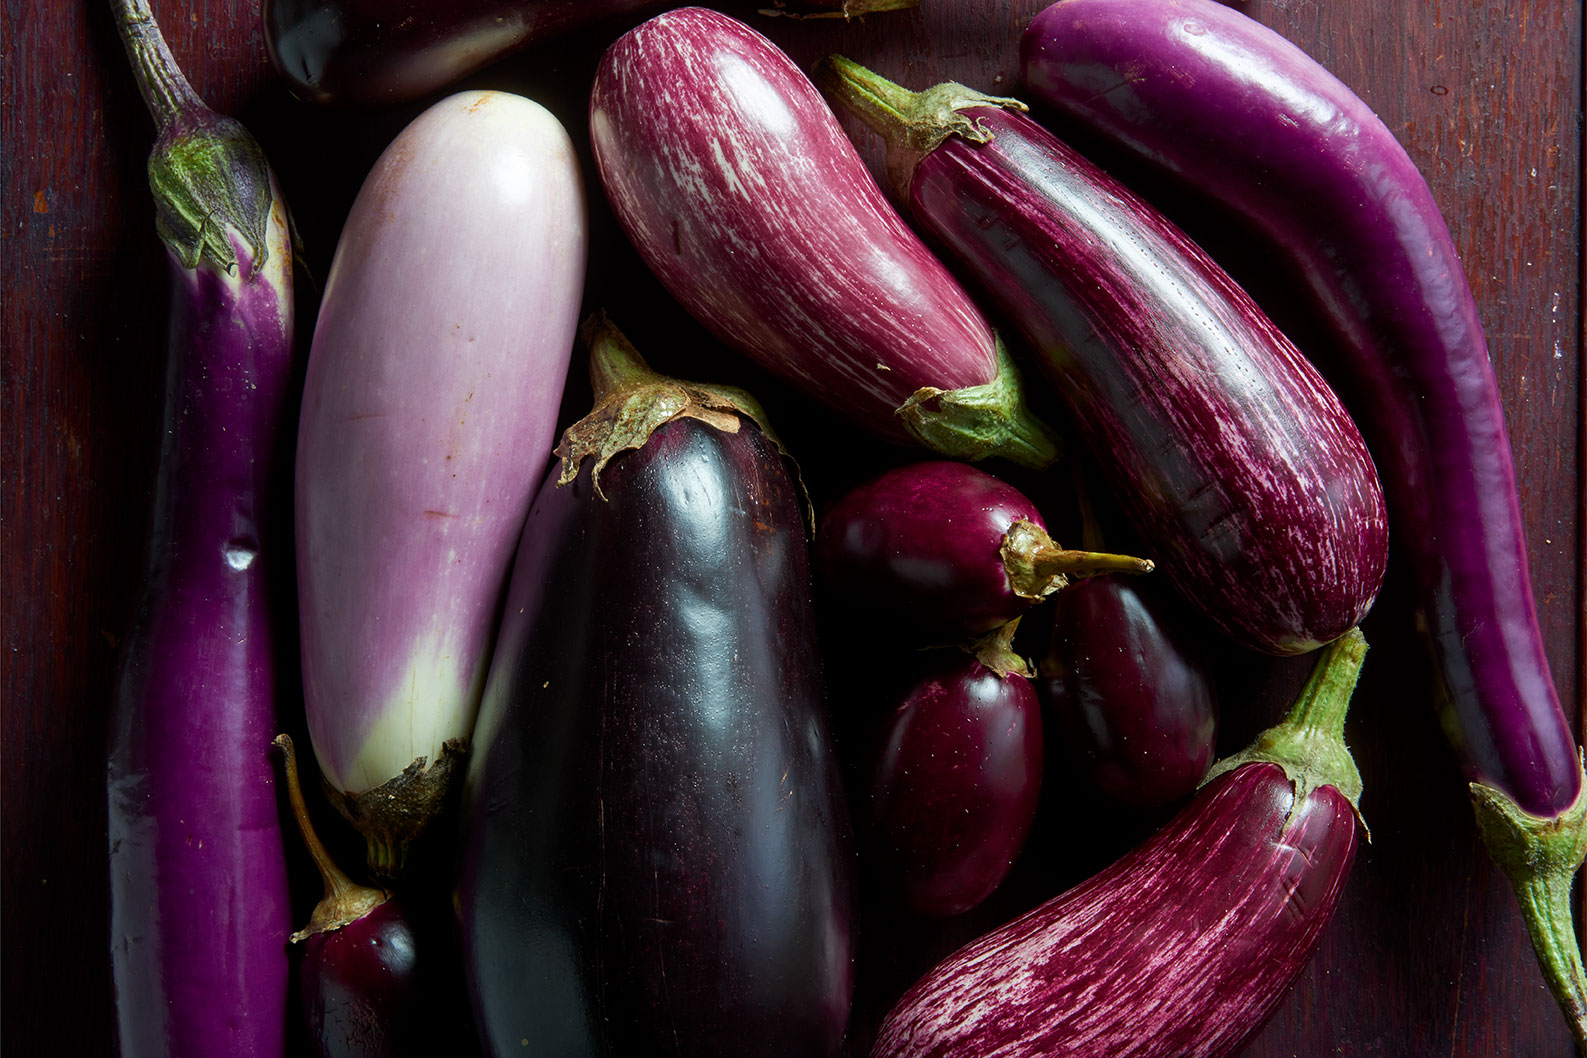 different types of eggplants on wooden table